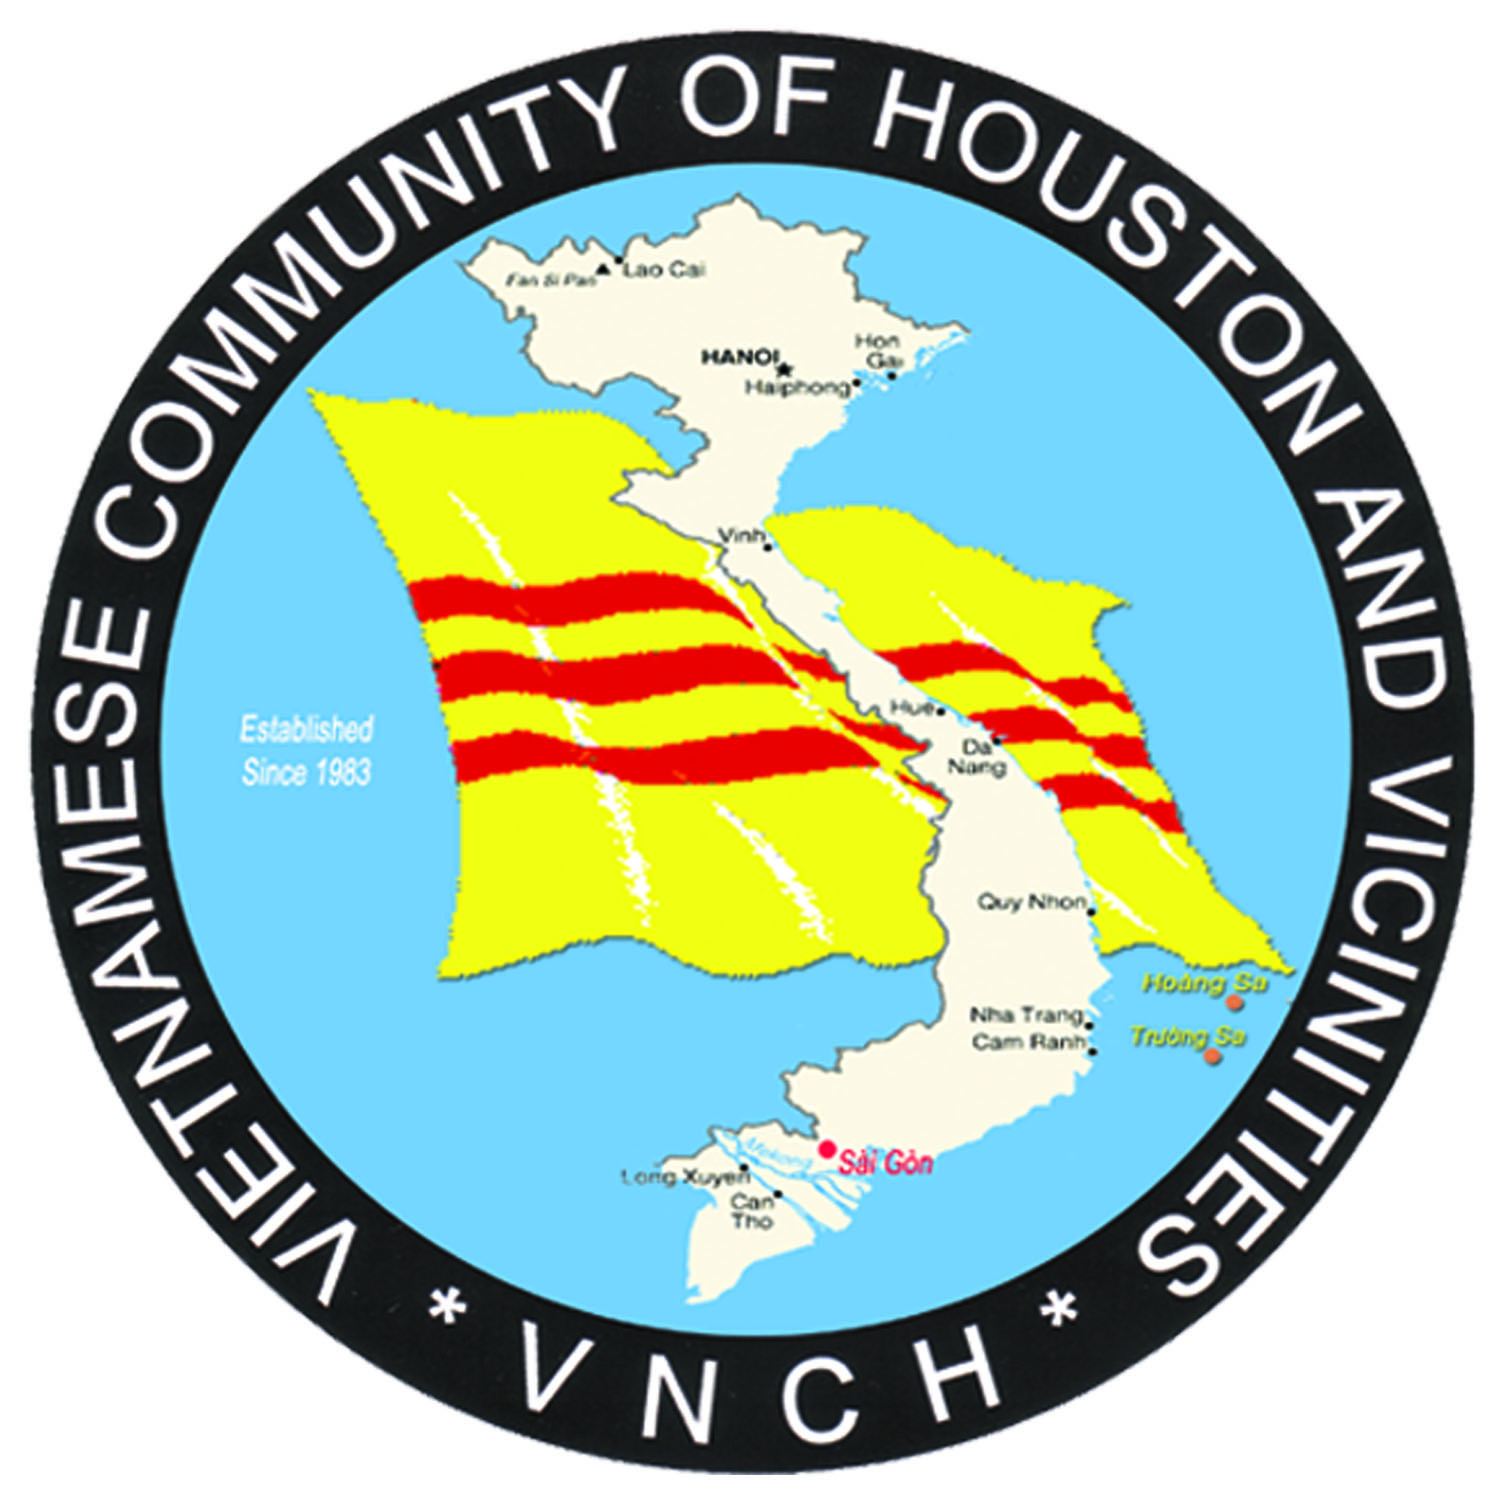 Vietnamese_Community_of_Houston_and_Vicinities.jpg